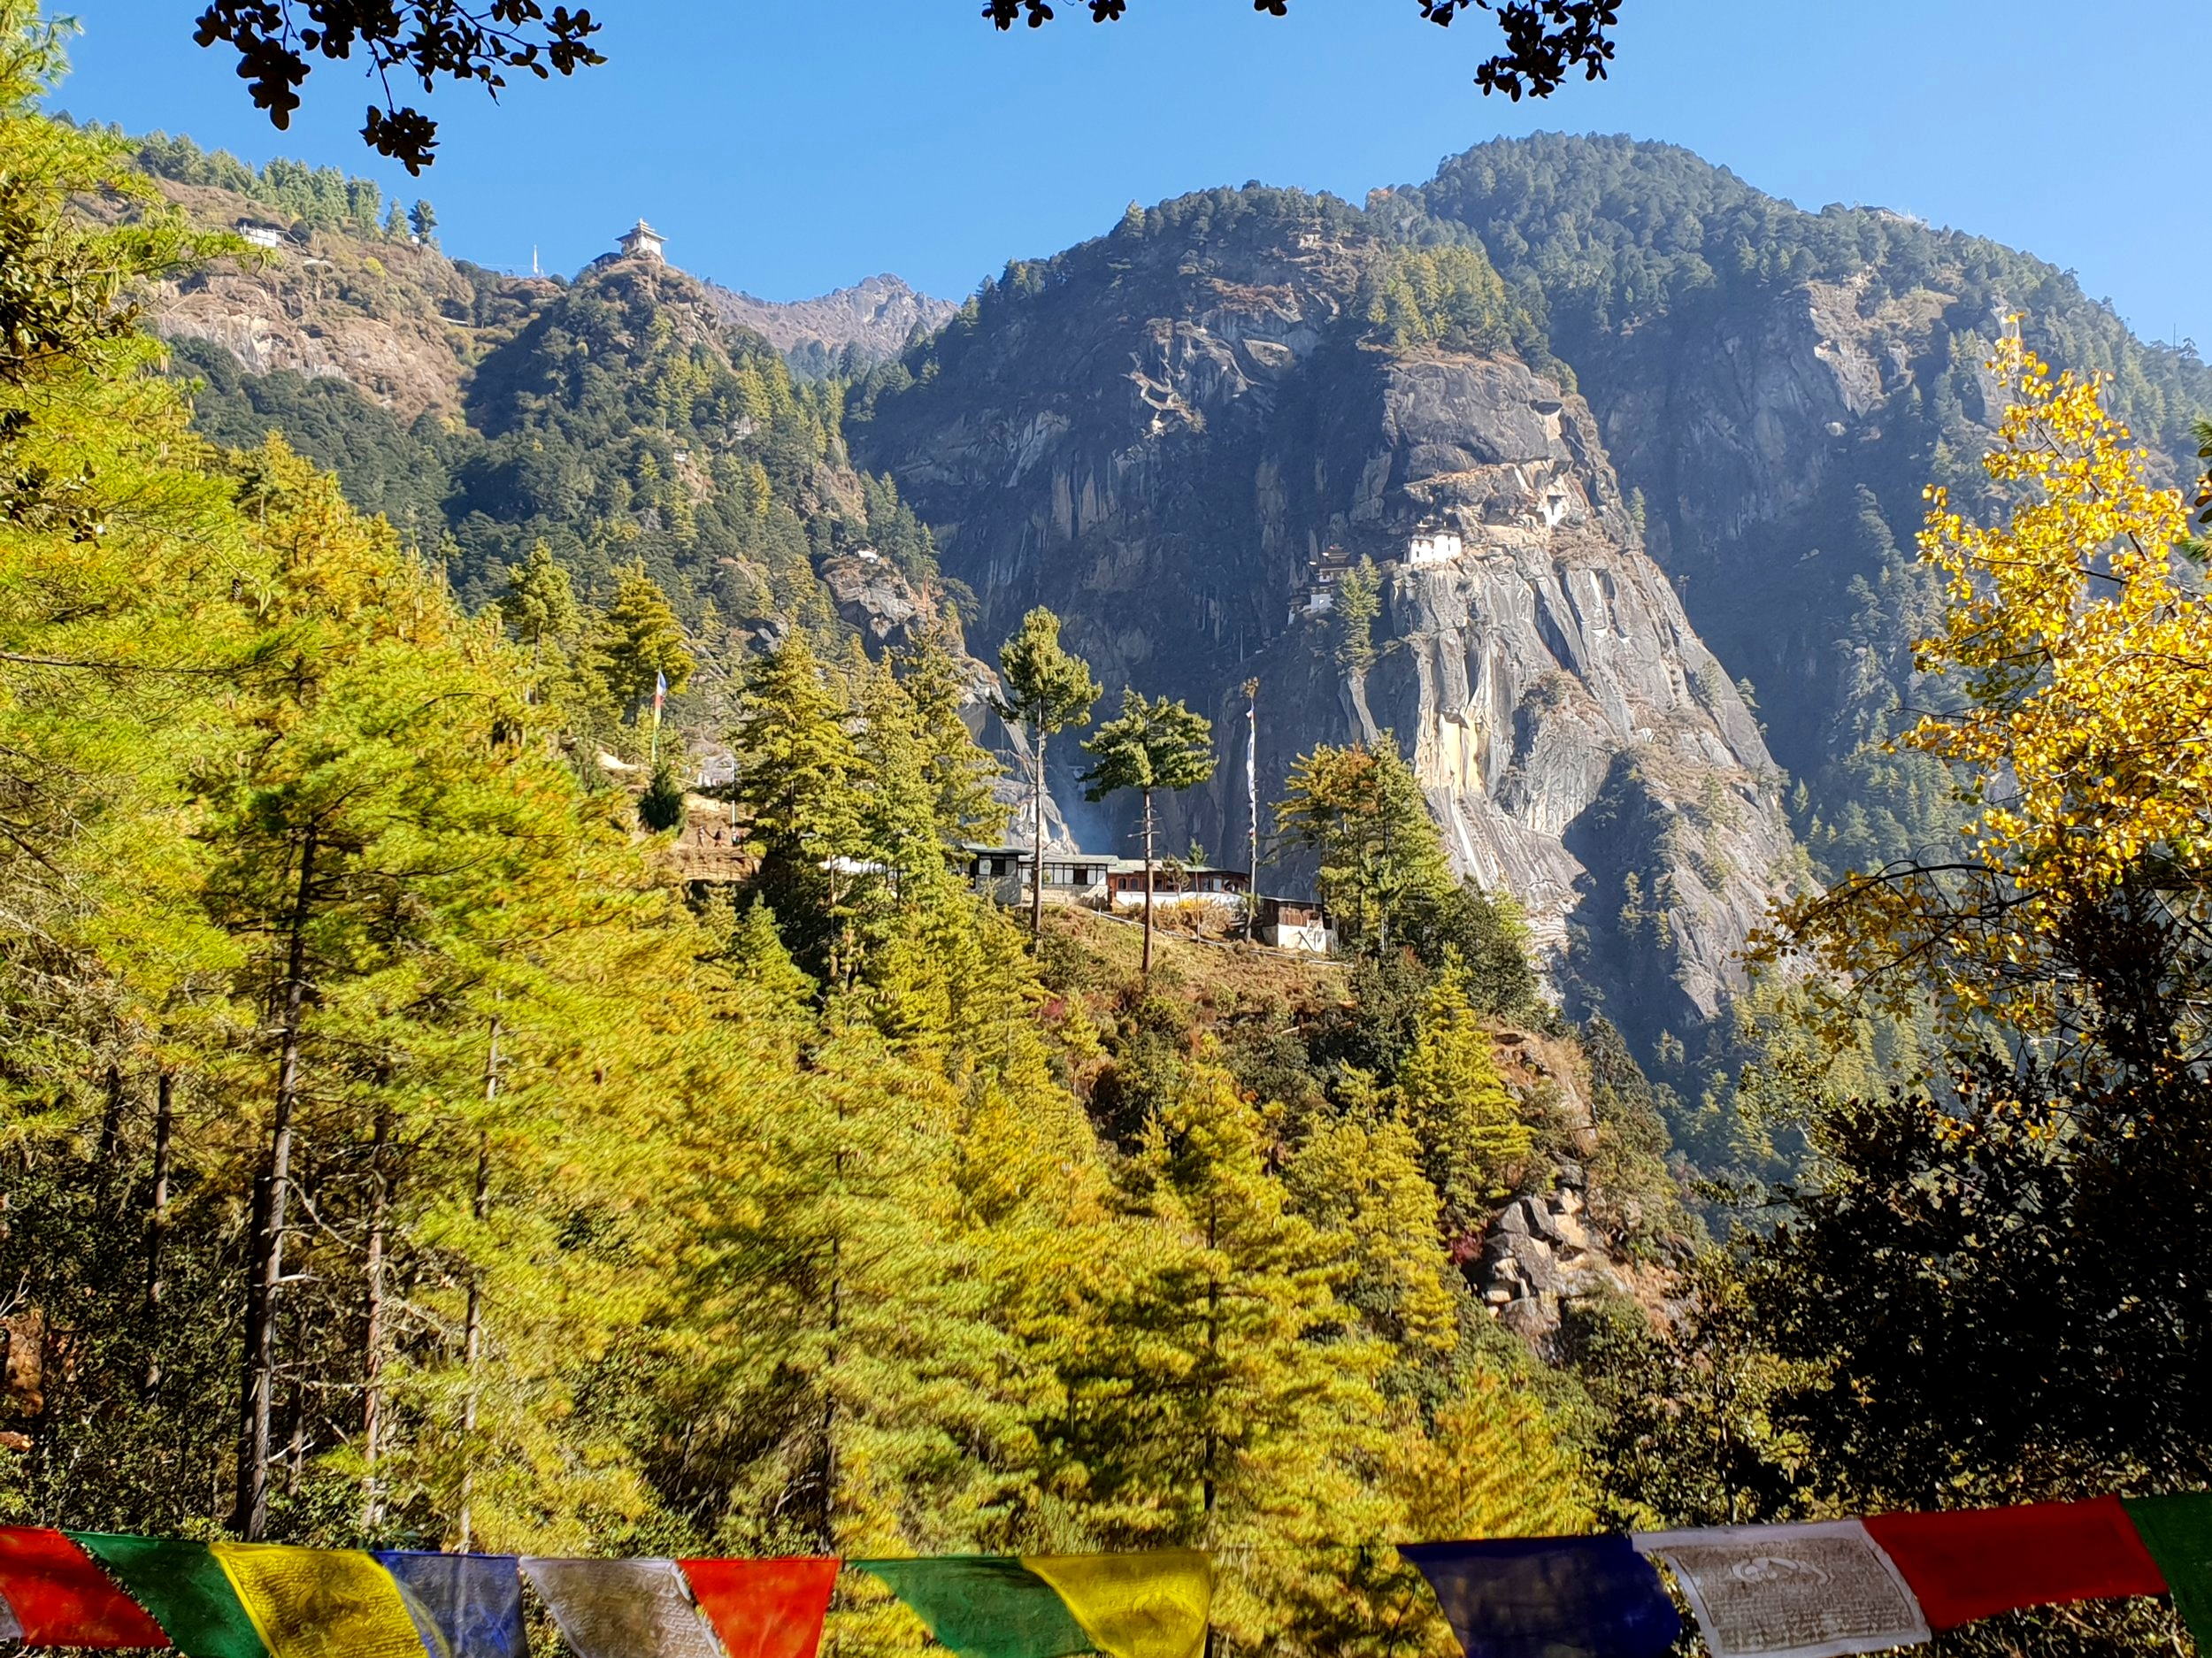 The Tiger's Nest, perched on the cliff side. Building the temple on flat land would have been too easy.